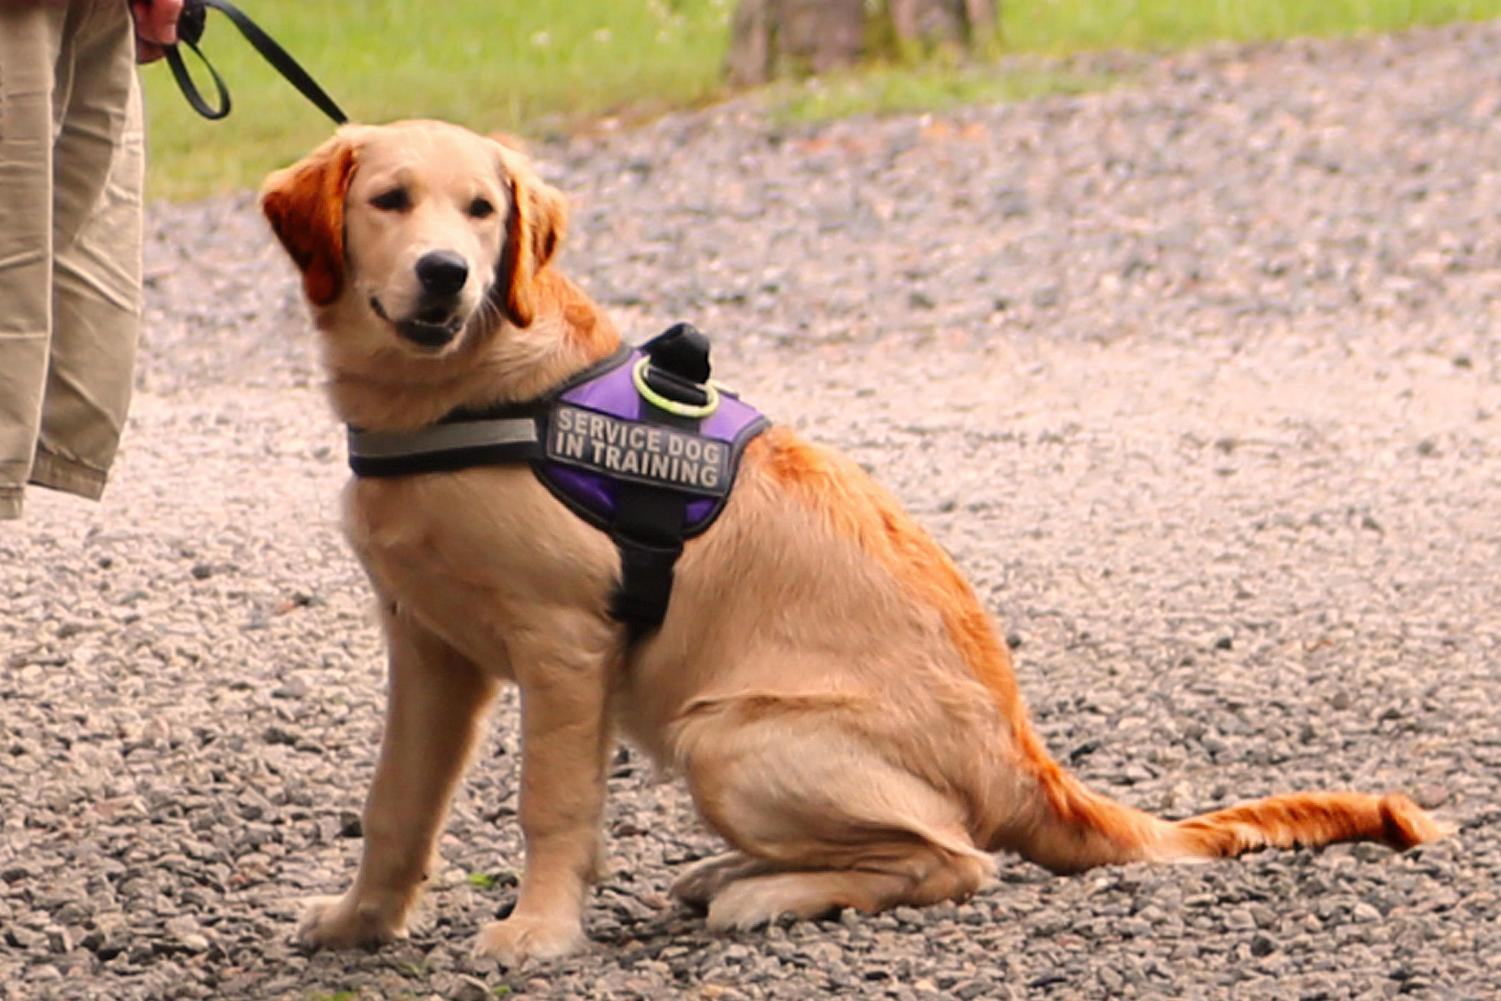 A golden retriever service dog in-training sits next to his handler. Golden retrievers are considered one of the best breeds for service due to many essential traits they possess.